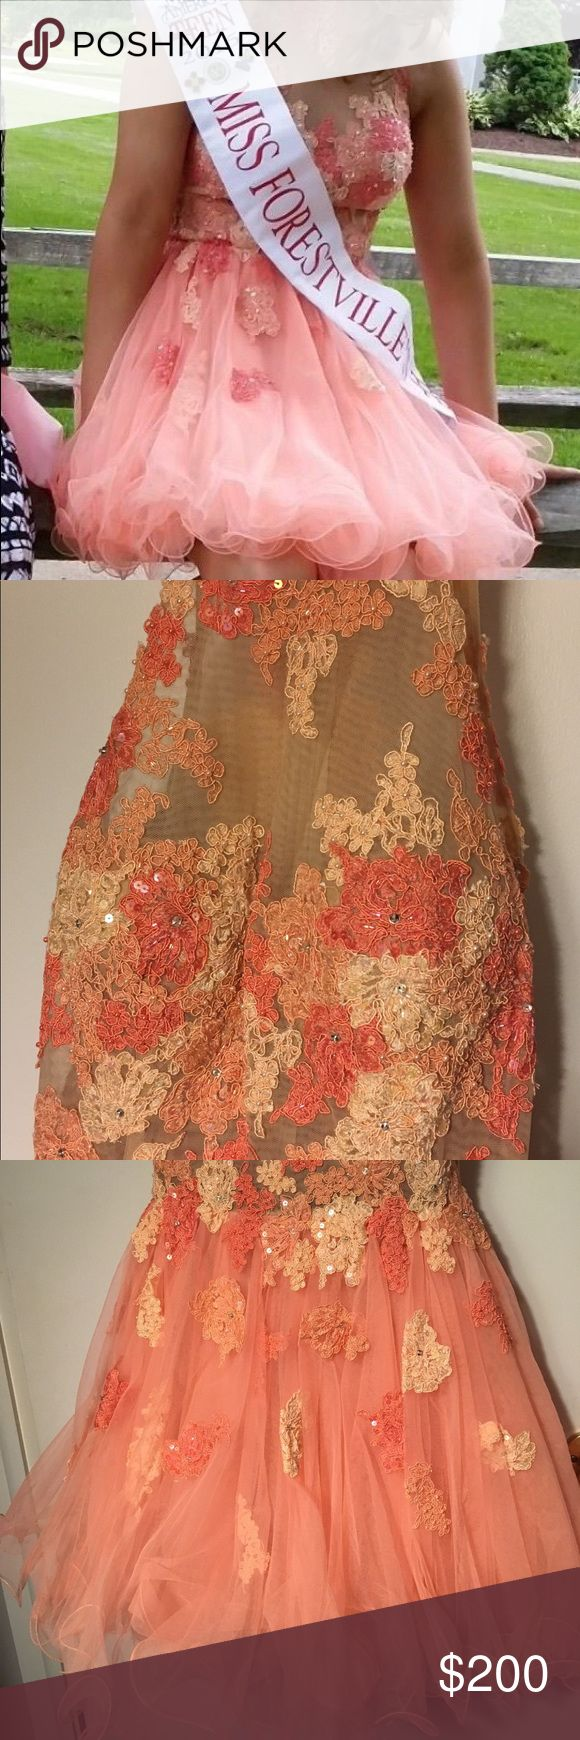 MacDuggal Sample Peach & Nude Cocktail Dress 4 You will be one of a kind with this gorgeous MacDuggal sample cocktail dress, size 4.  The bodice has a nude panel with floral embellishments accented with sequins & beads. The embellishments extent down into the fluffy skirt. There is a satiny underskirt with several layers of tulle that is curled at the hem to make it full.  There are cups inside the top to hold everything in place! Back has a hook and zipper that work just fine. Worn once for…